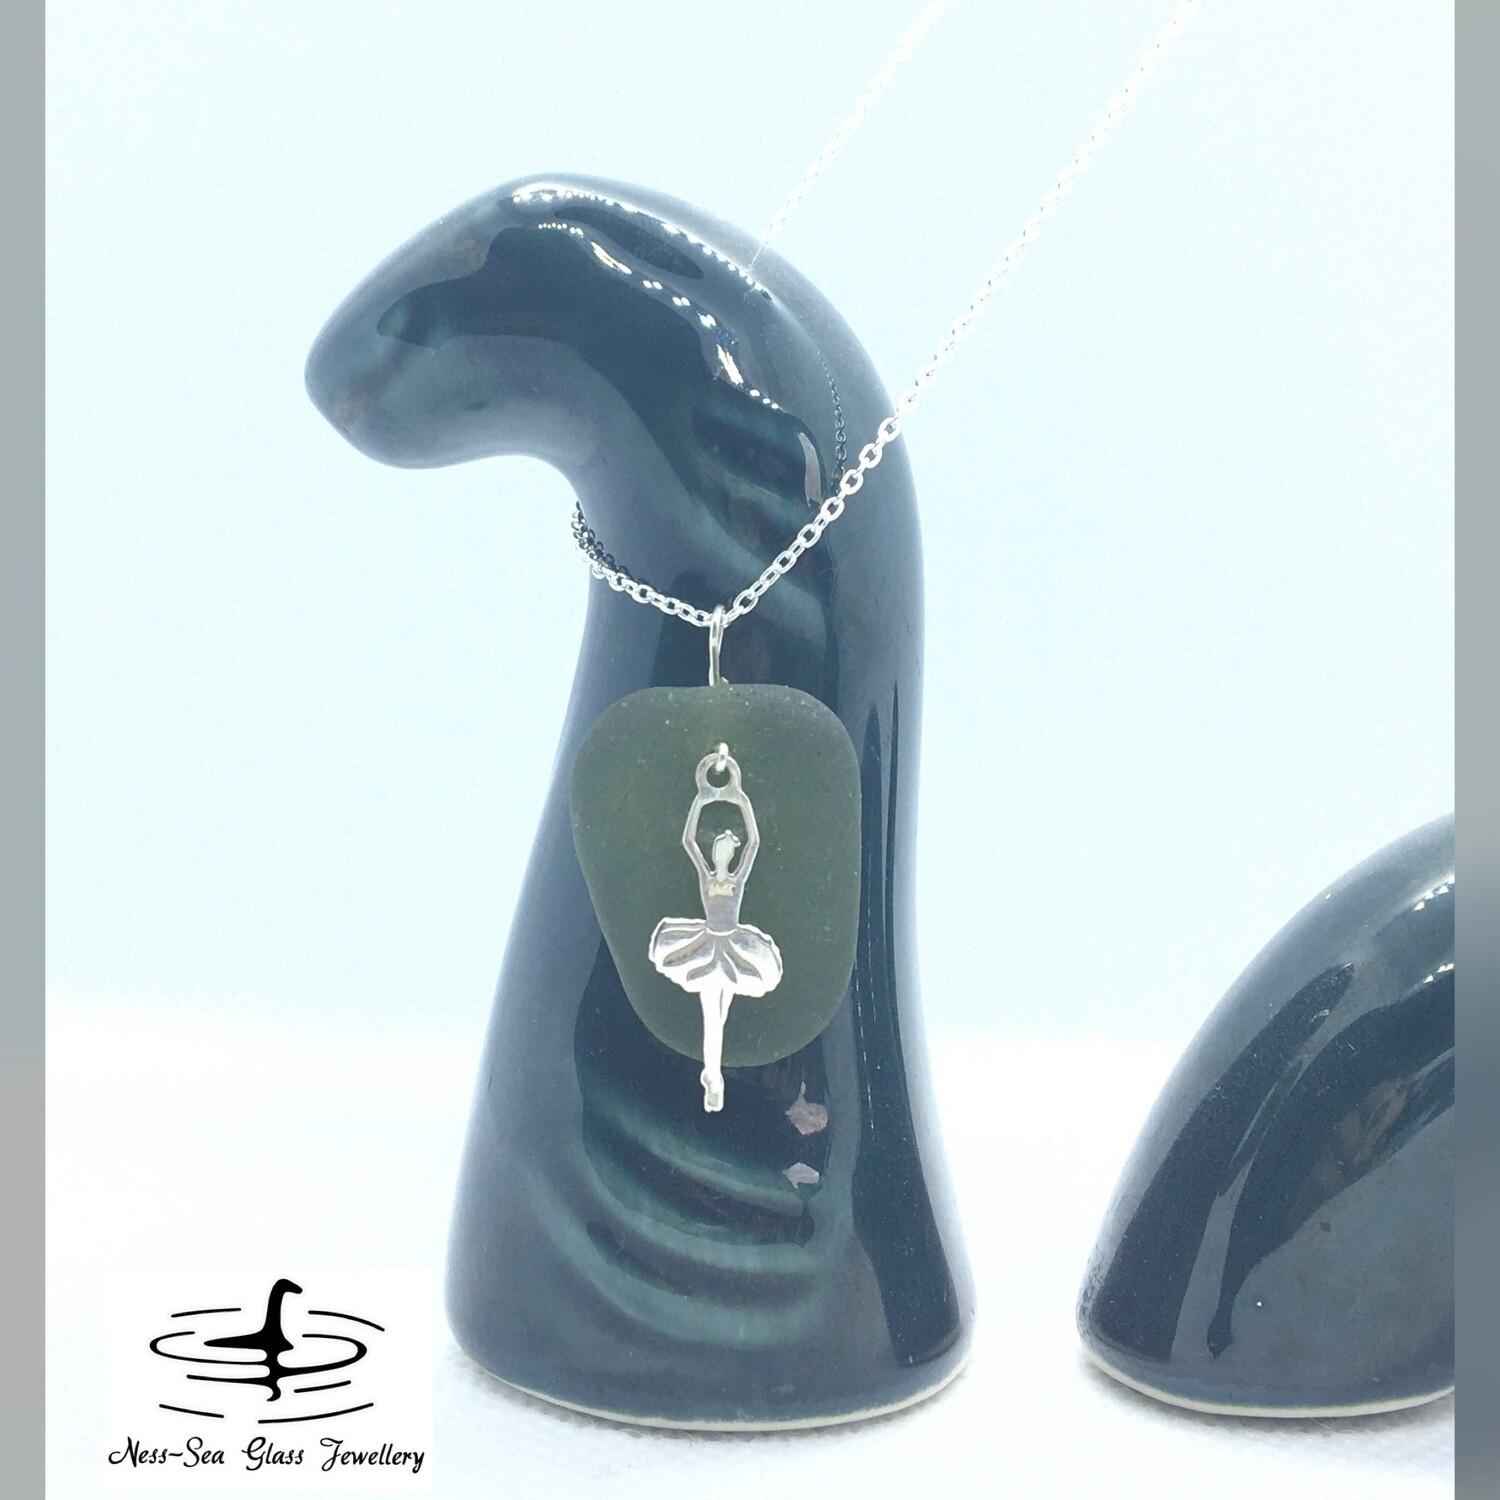 Green Loch Ness Sea Glass Necklace with Sterling Silver Ballet Dancer Detail and Fine Sterling Silver Chain